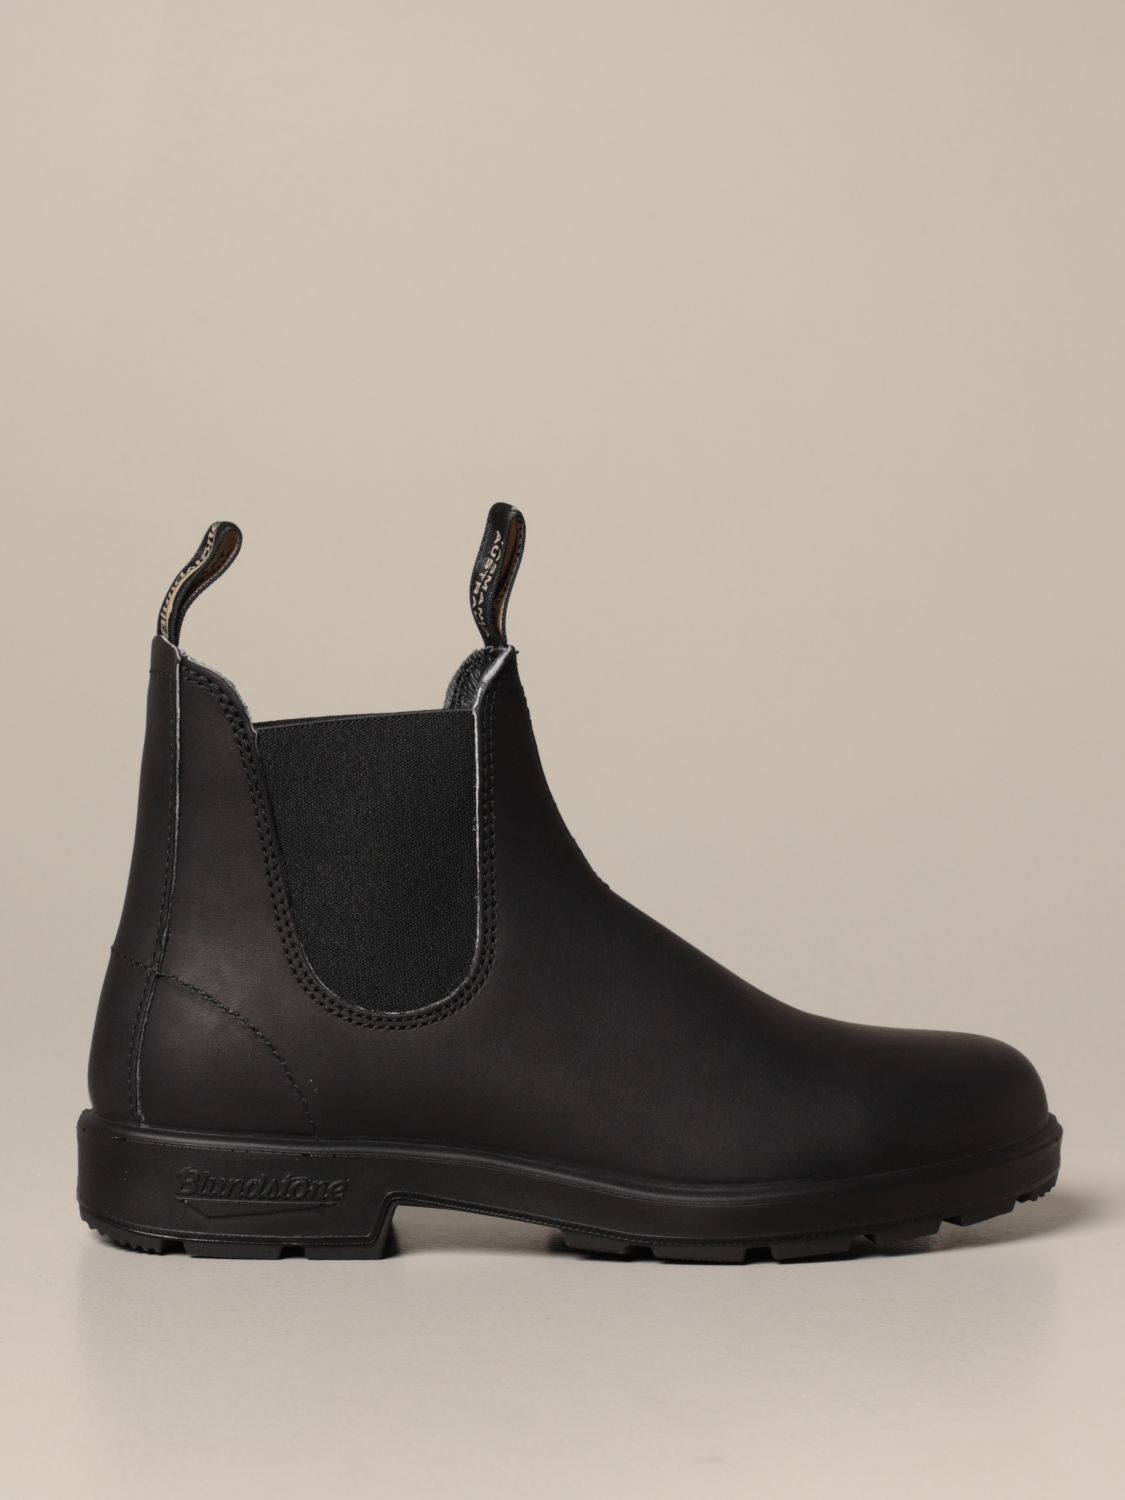 Boots Blundstone: Boots men Blundstone black 1